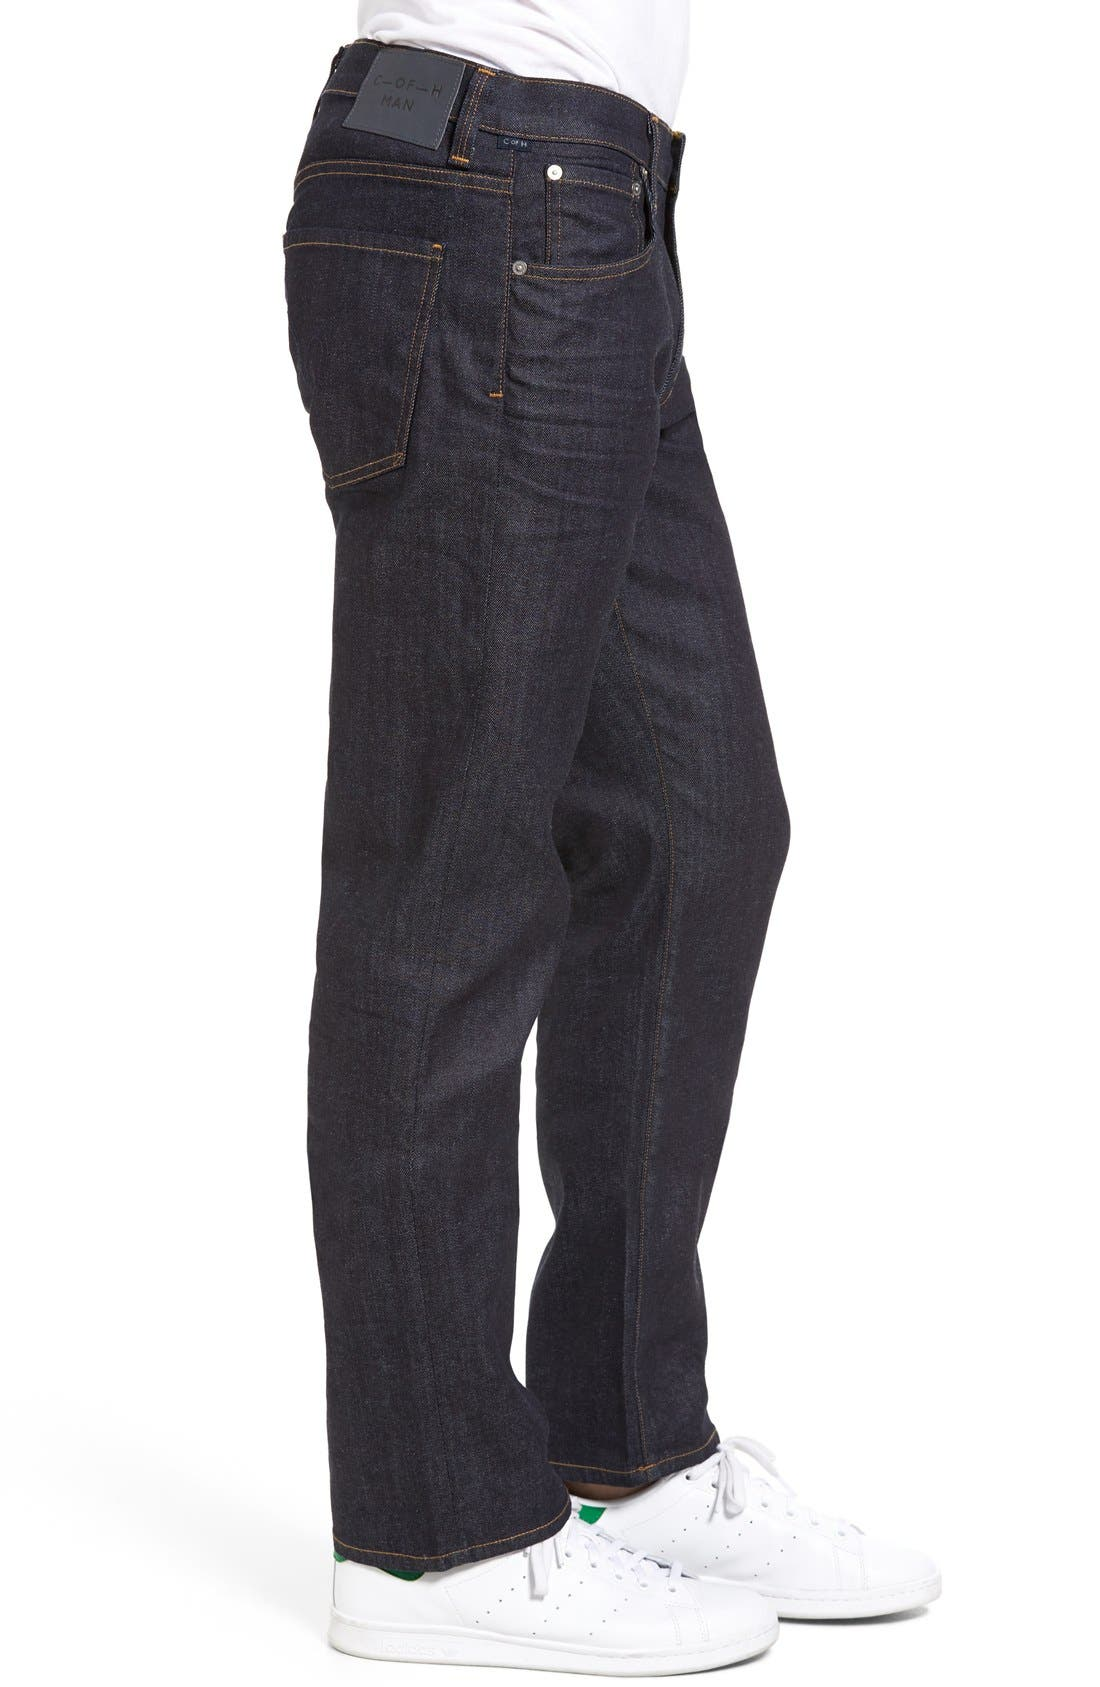 Sid Classic Straight Leg Jeans,                             Alternate thumbnail 8, color,                             LAFAYETTE